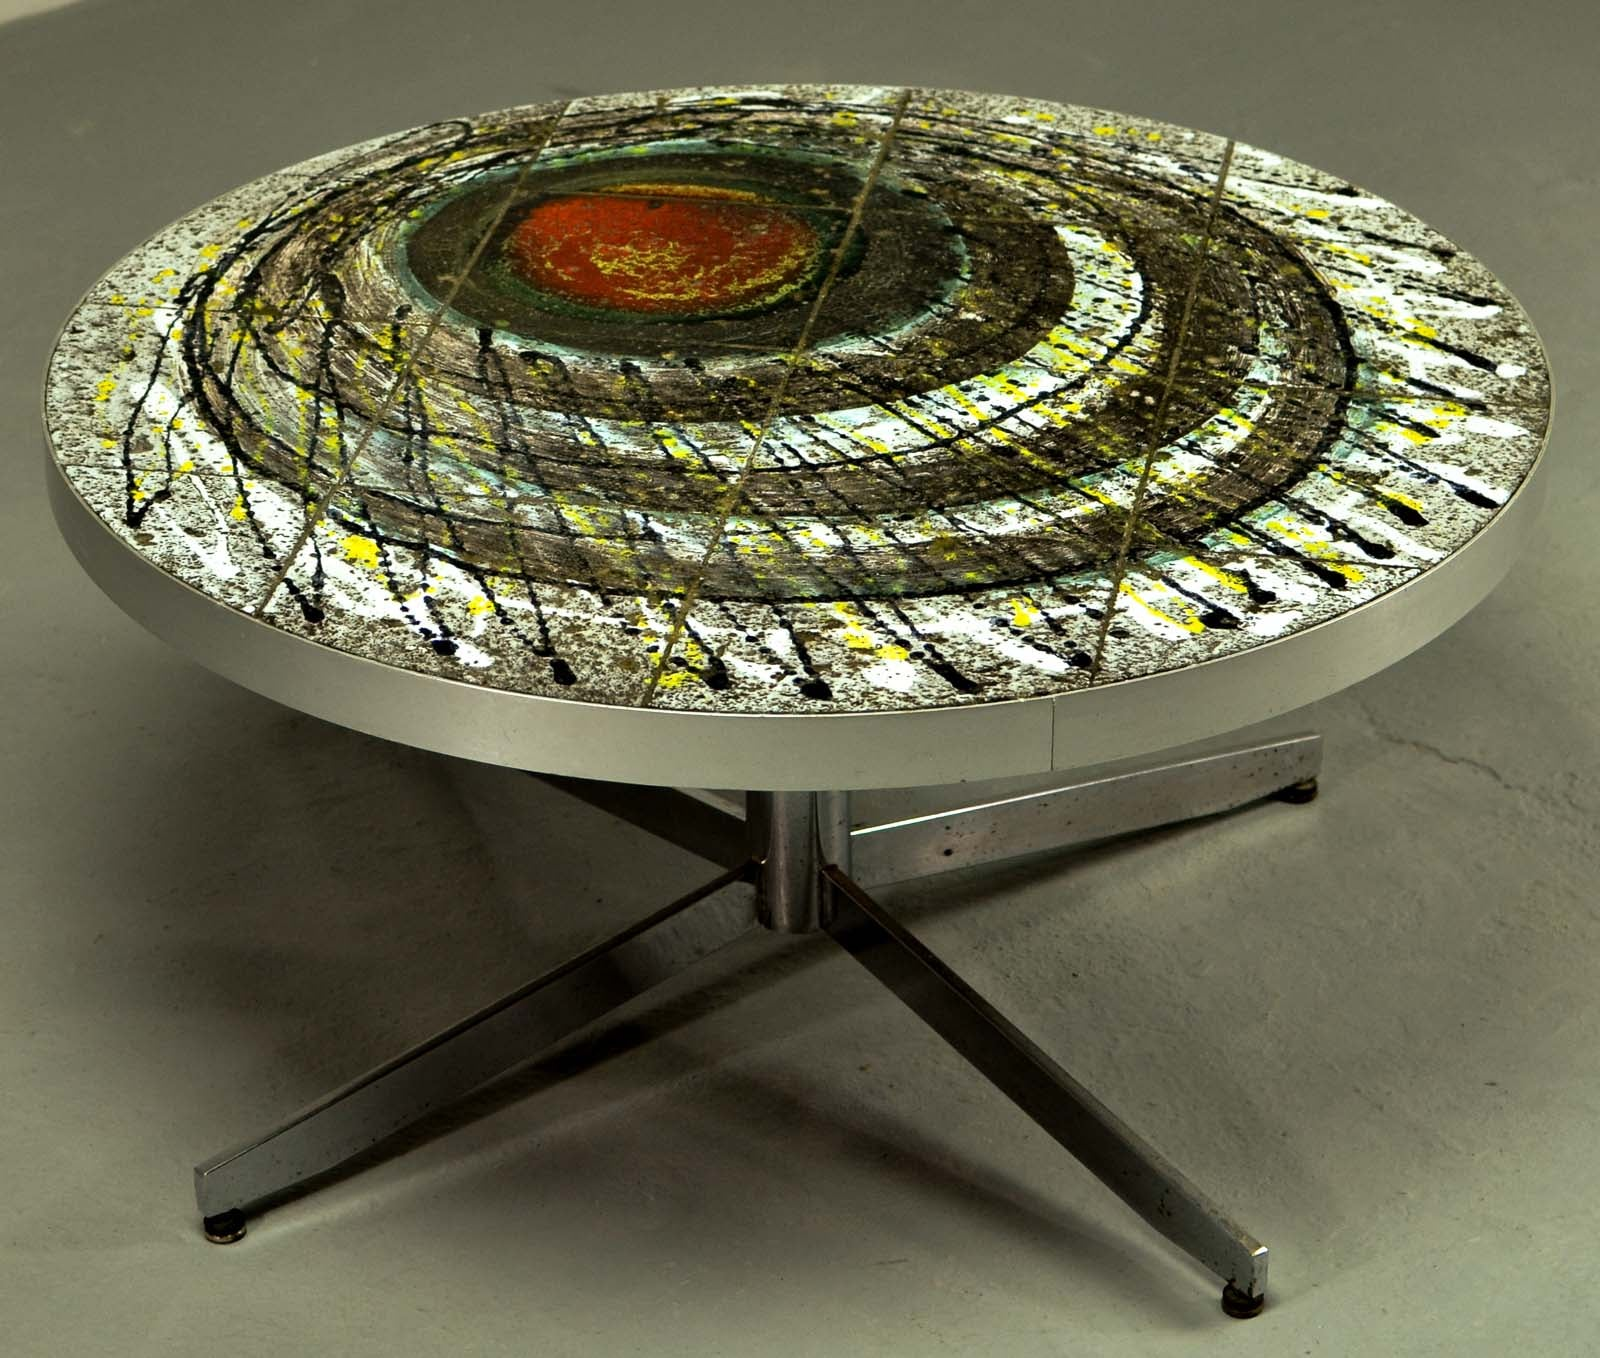 Brutalist Artistic Ceramic Tiles Coffee Table in the Style of